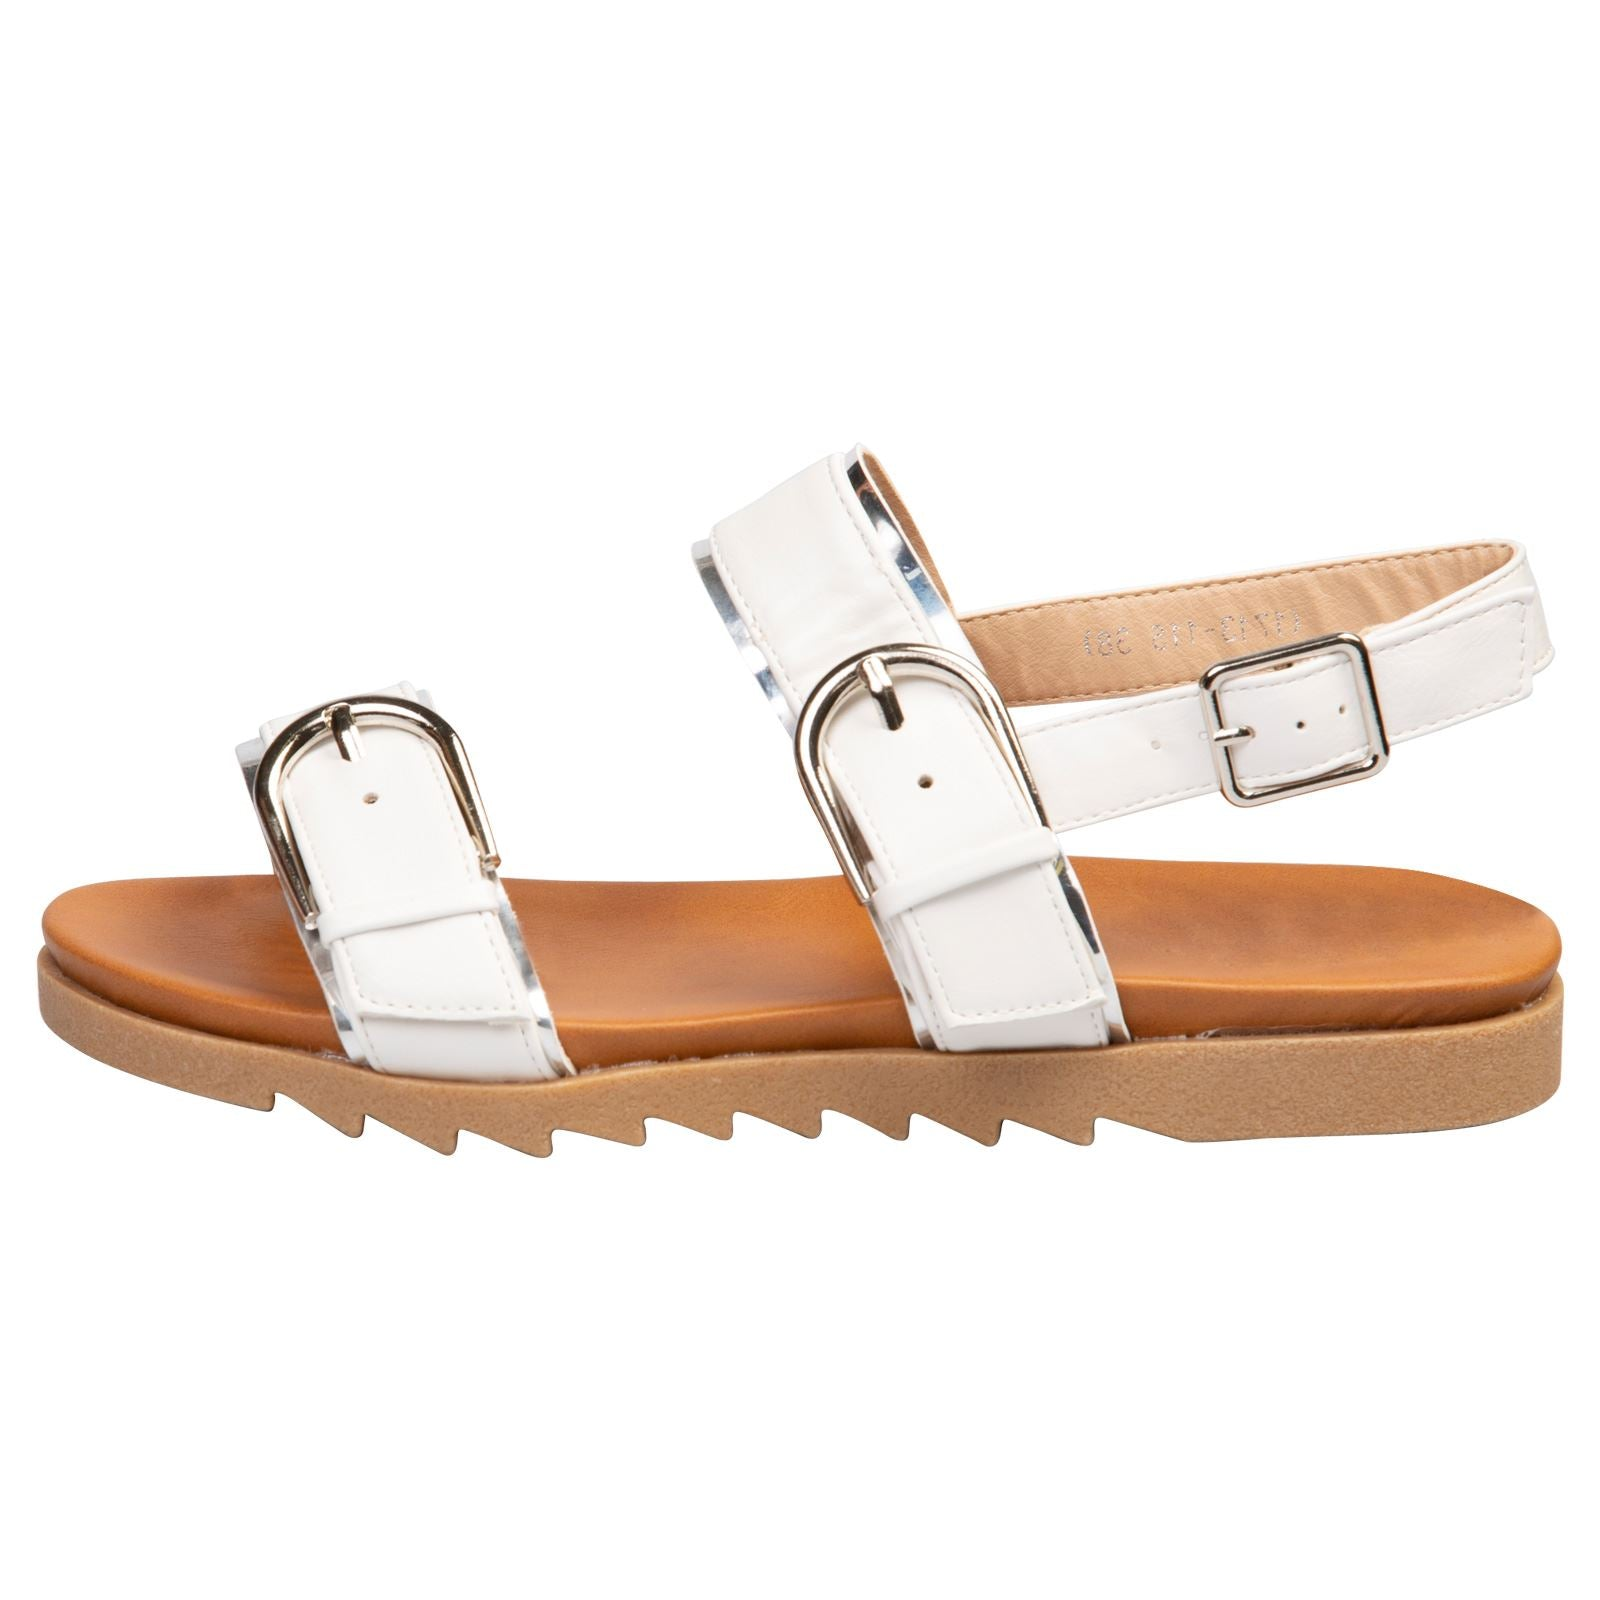 Alice Buckle Detail Sandals in White Faux Leather - Feet First Fashion